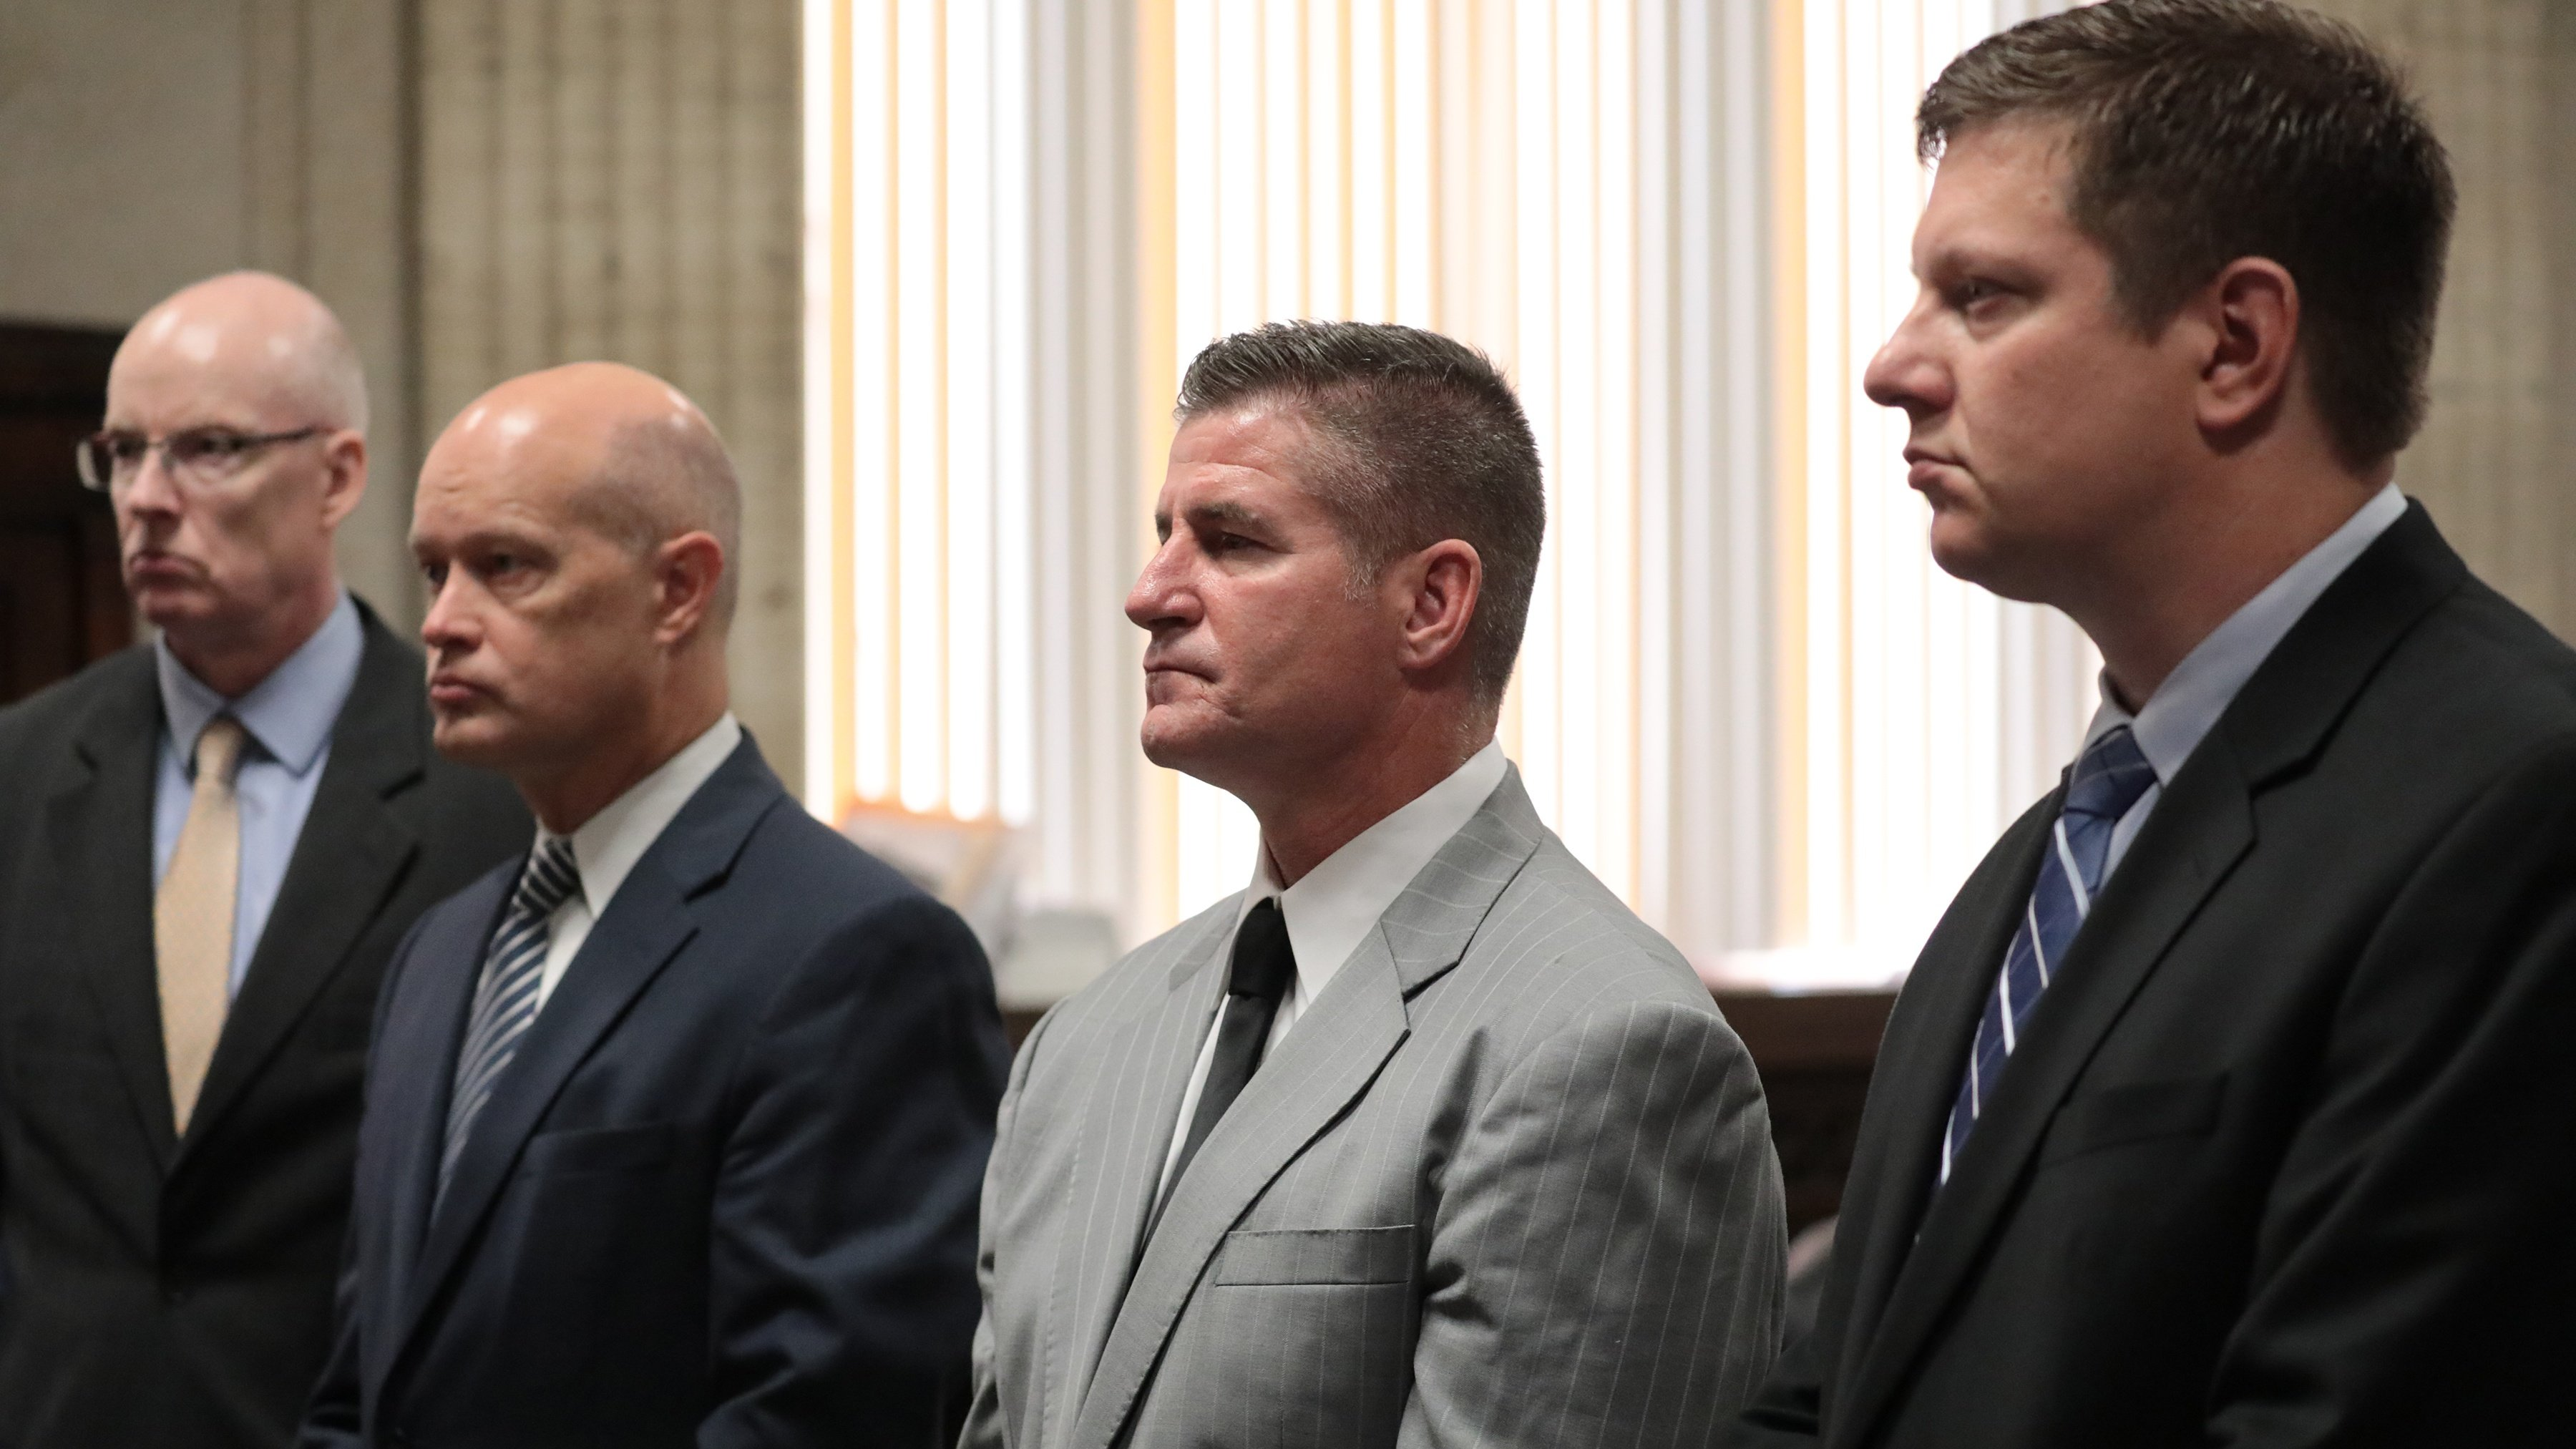 From left: Attorney Joseph Cullen, special prosecutor Joe McMahon, attorney Daniel Herbert and his client Chicago police Officer Jason Van Dyke at the trial for the shooting of Laquan McDonald at the Leighton Criminal Court Building, Friday, Sept. 14, 2018. (Antonio Perez /Pool/ Chicago Tribune)